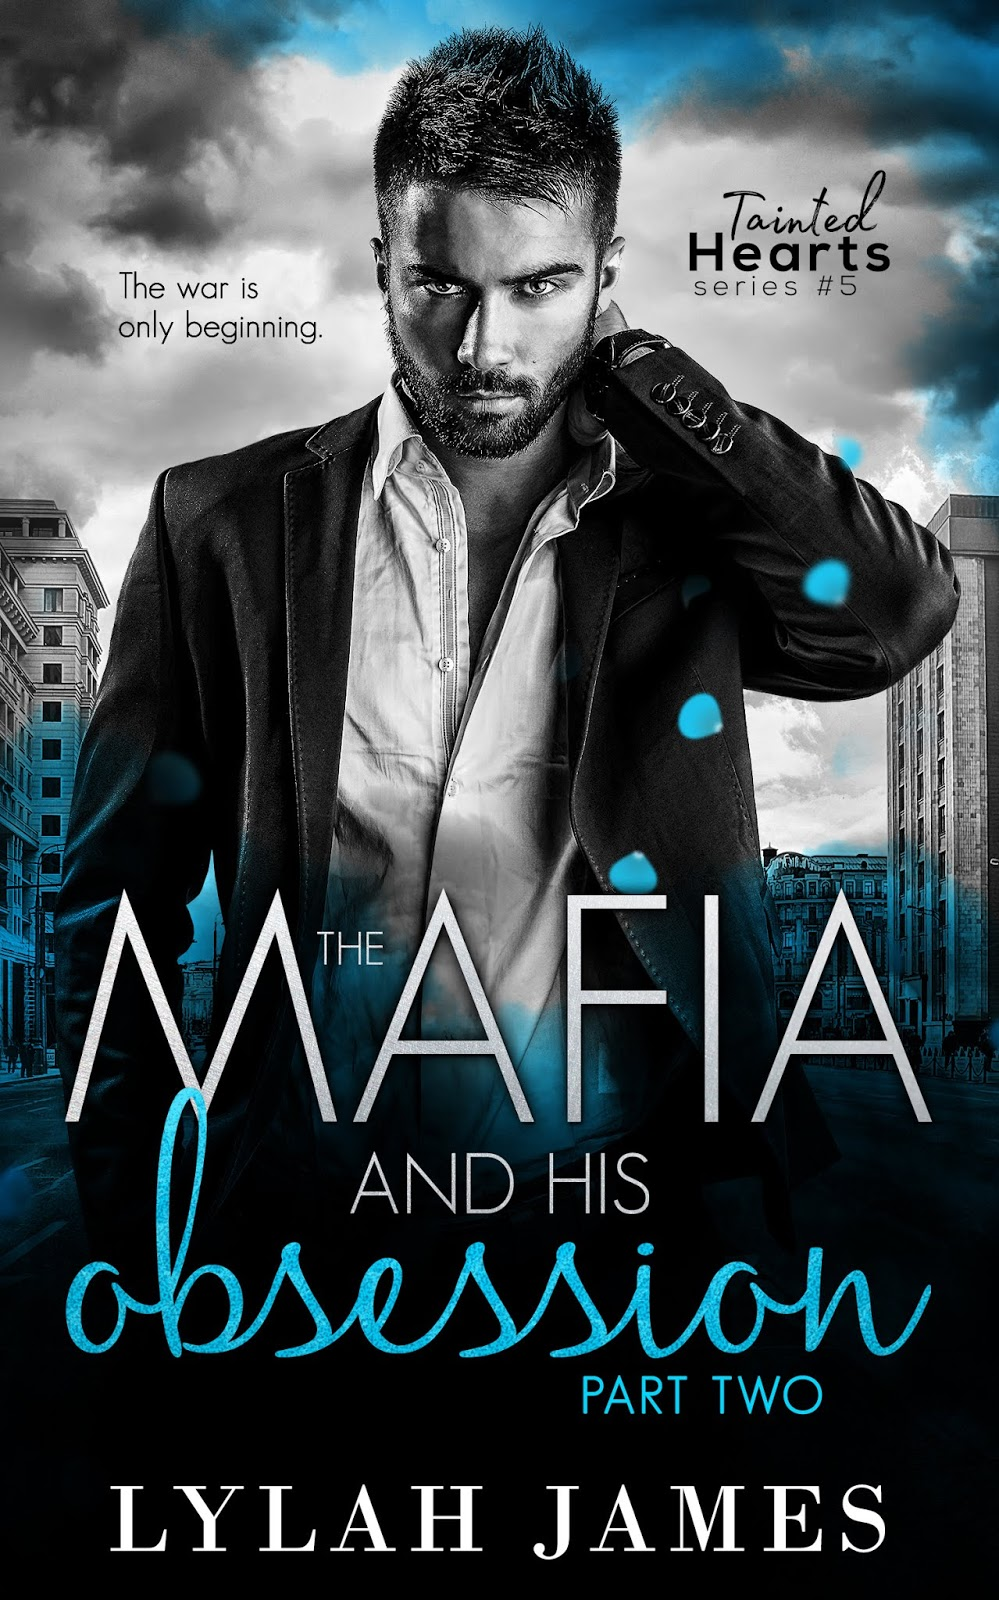 RELEASE BLITZ - The Mafia and His Obsession: Part Two by